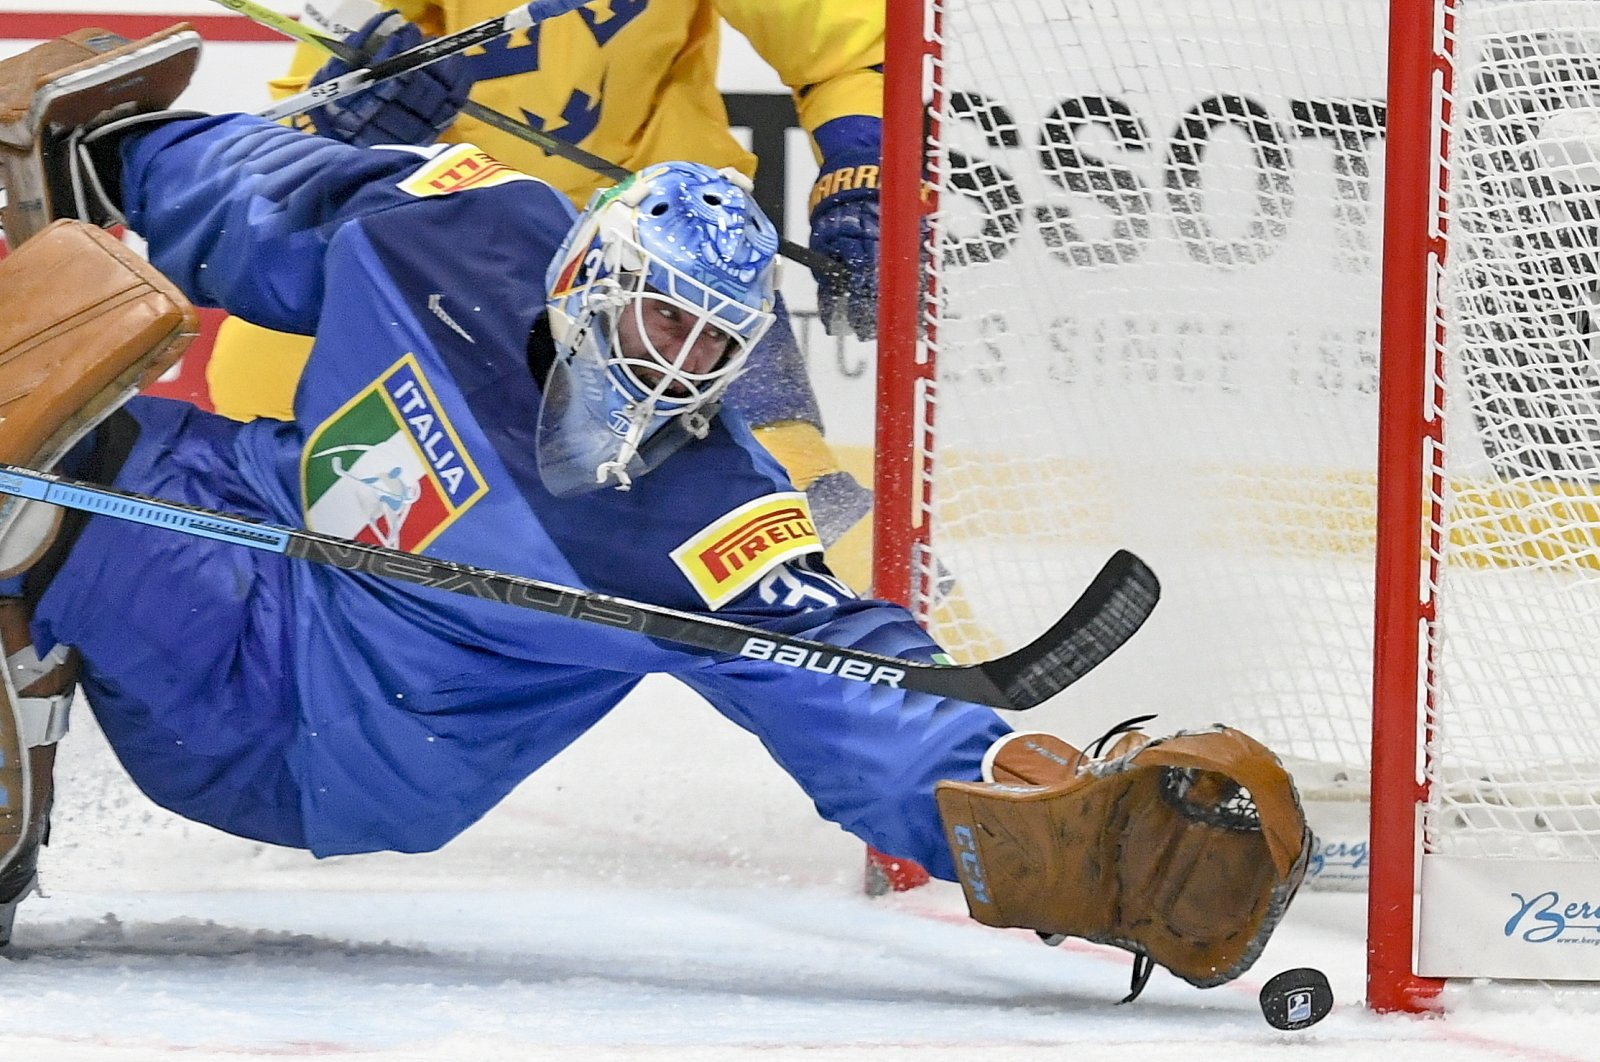 Goalkeeper Marco De Filippo Roia of Italy in action during the IIHF World Championship group B ice hockey match between Italy and Sweden at the Ondrej Nepela Arena in Bratislava, Slovakia, May 12, 2019. (EPA Photo)